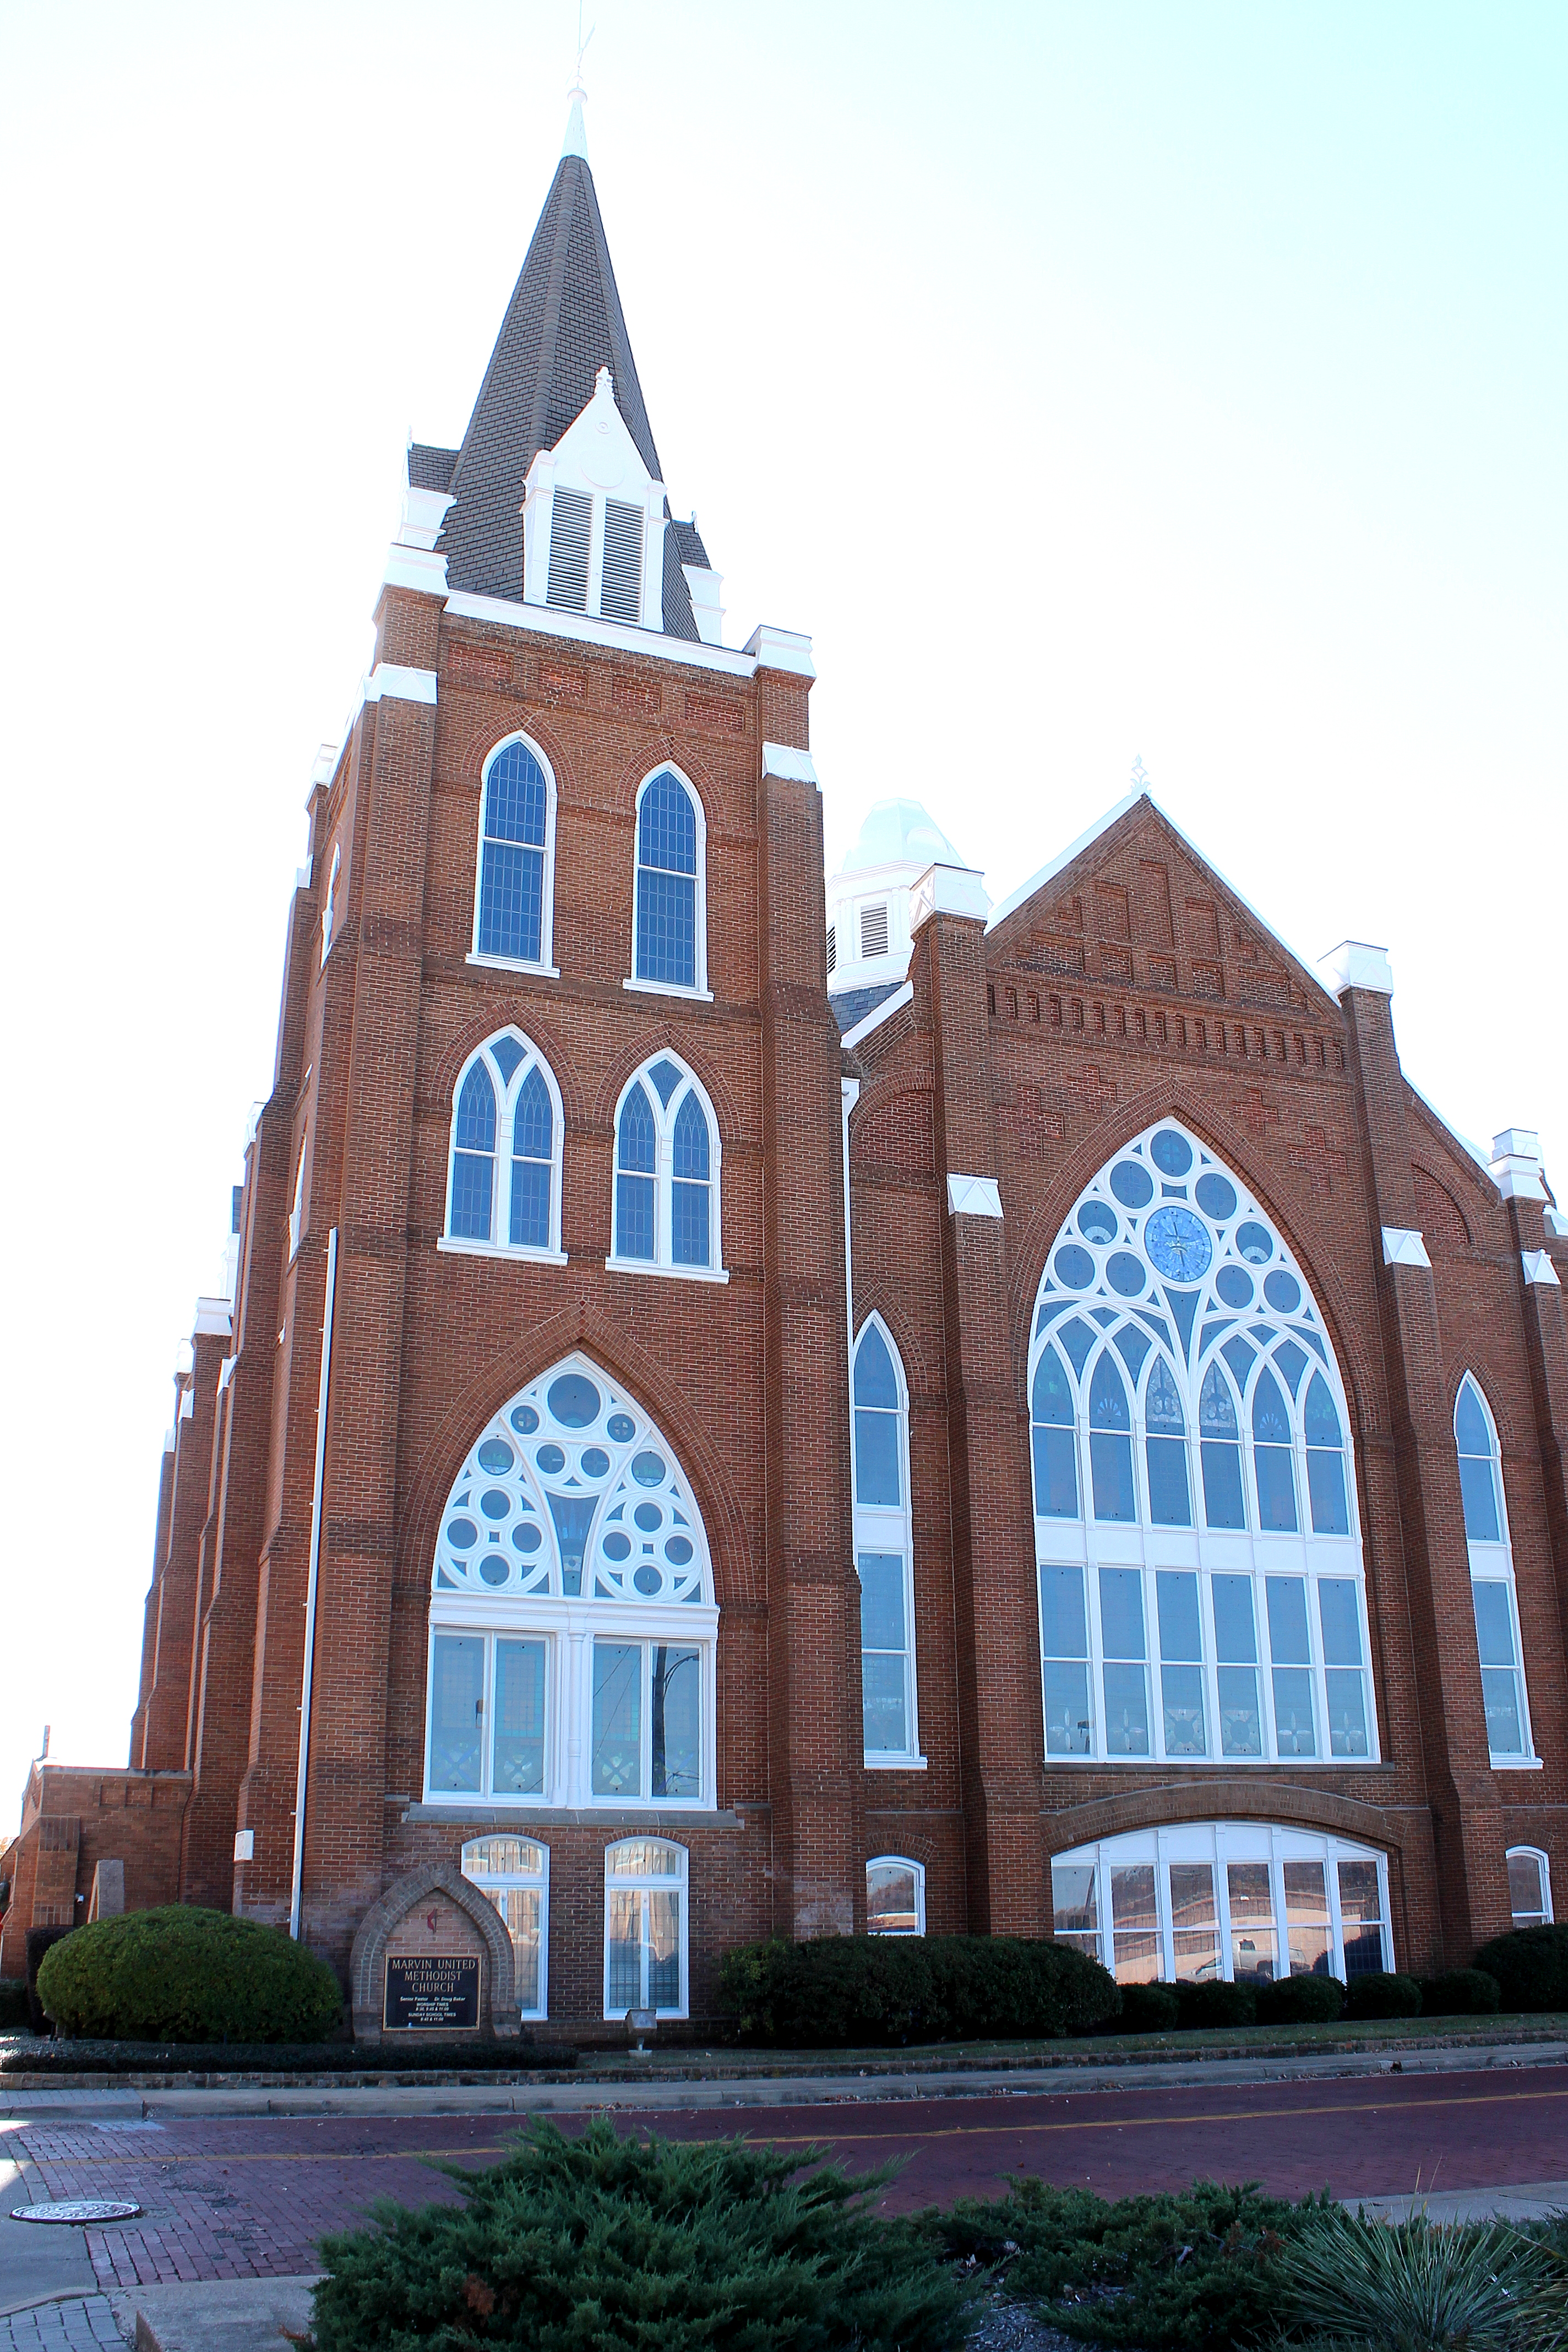 Marvin Methodist Episcopal Church serves a congregation that was established prior to the Civil War. Construction of this historic church began in 1890.